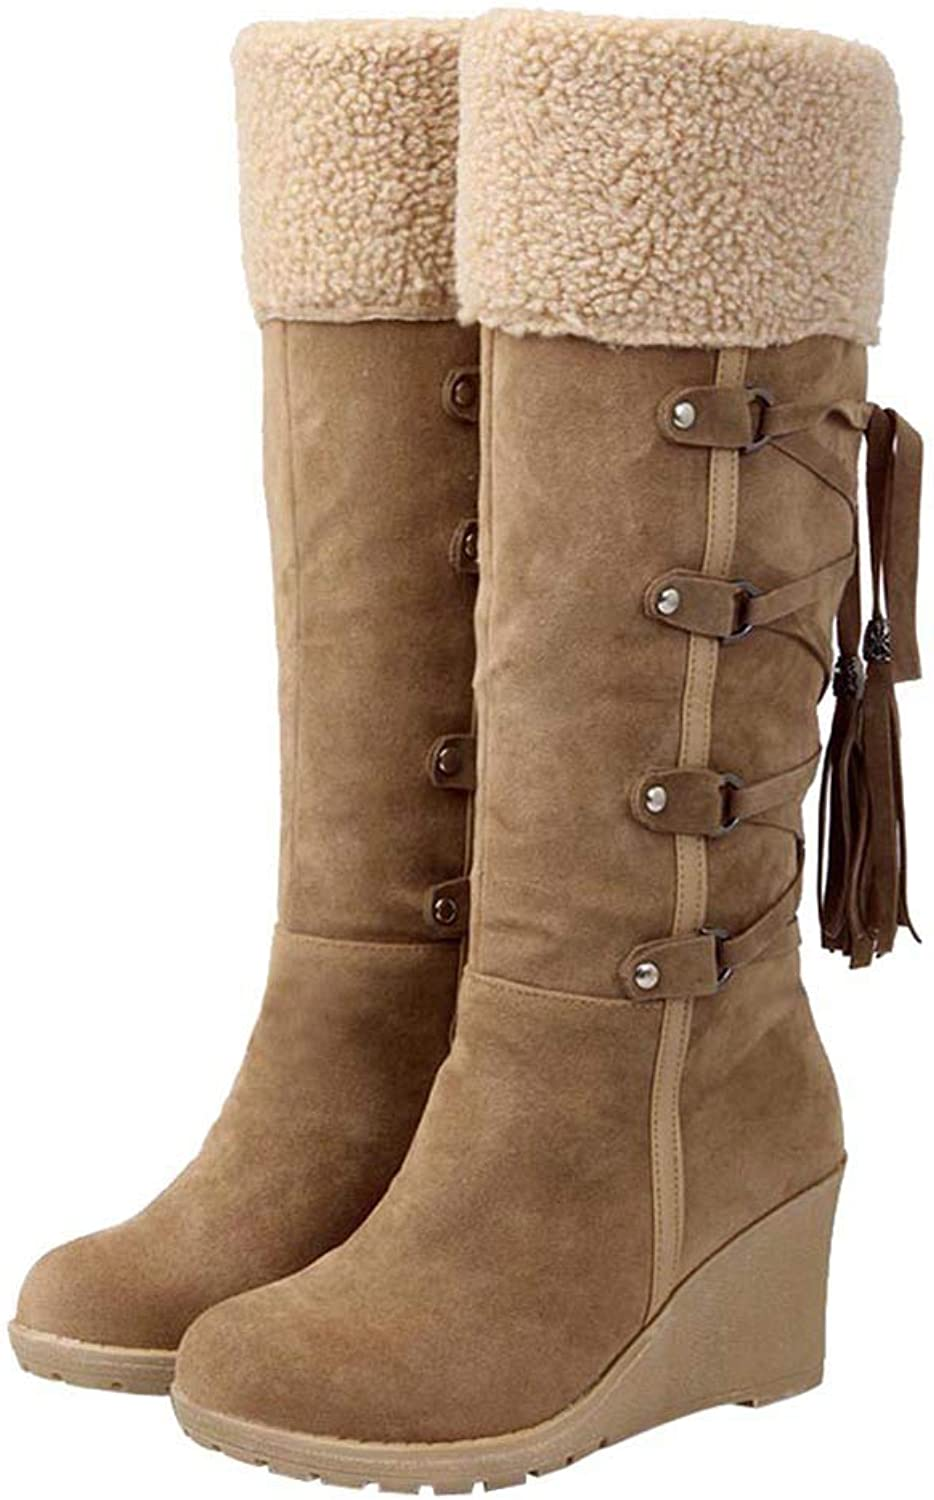 Hoxekle Knee High Boots Winter Snow Black Beige Fringe Wedges Buckle Casual Outdoor Thick Platform